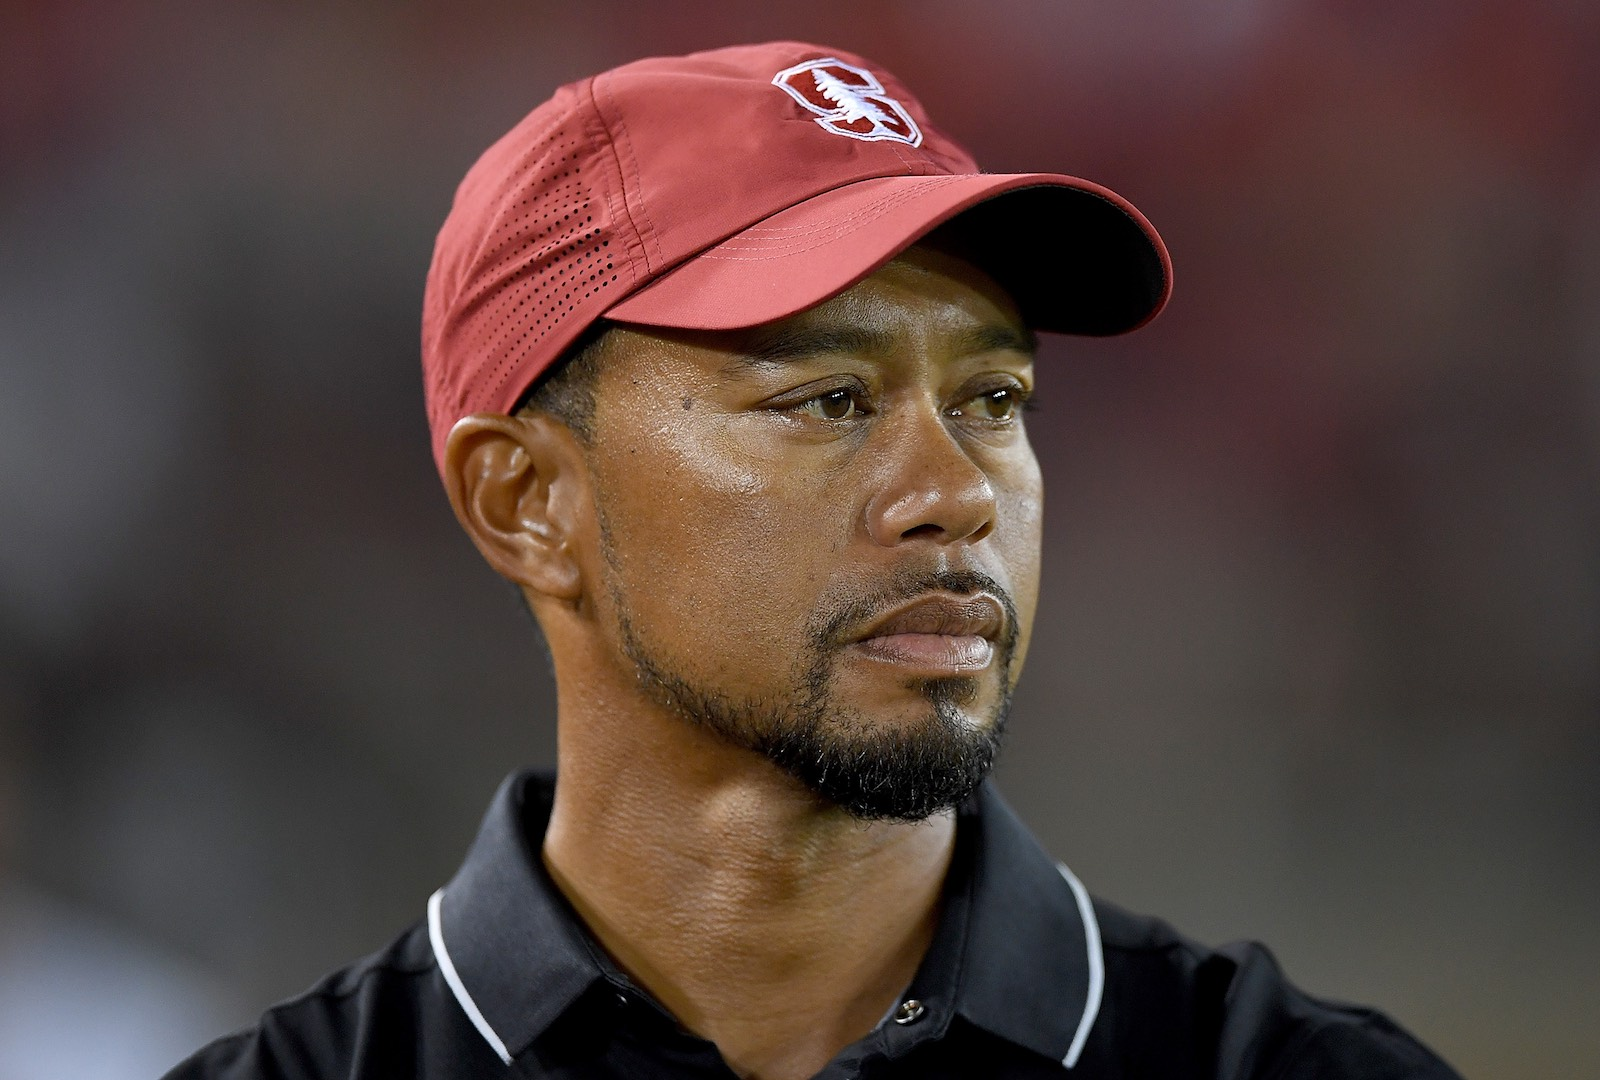 Why Did Tiger Call It Off?